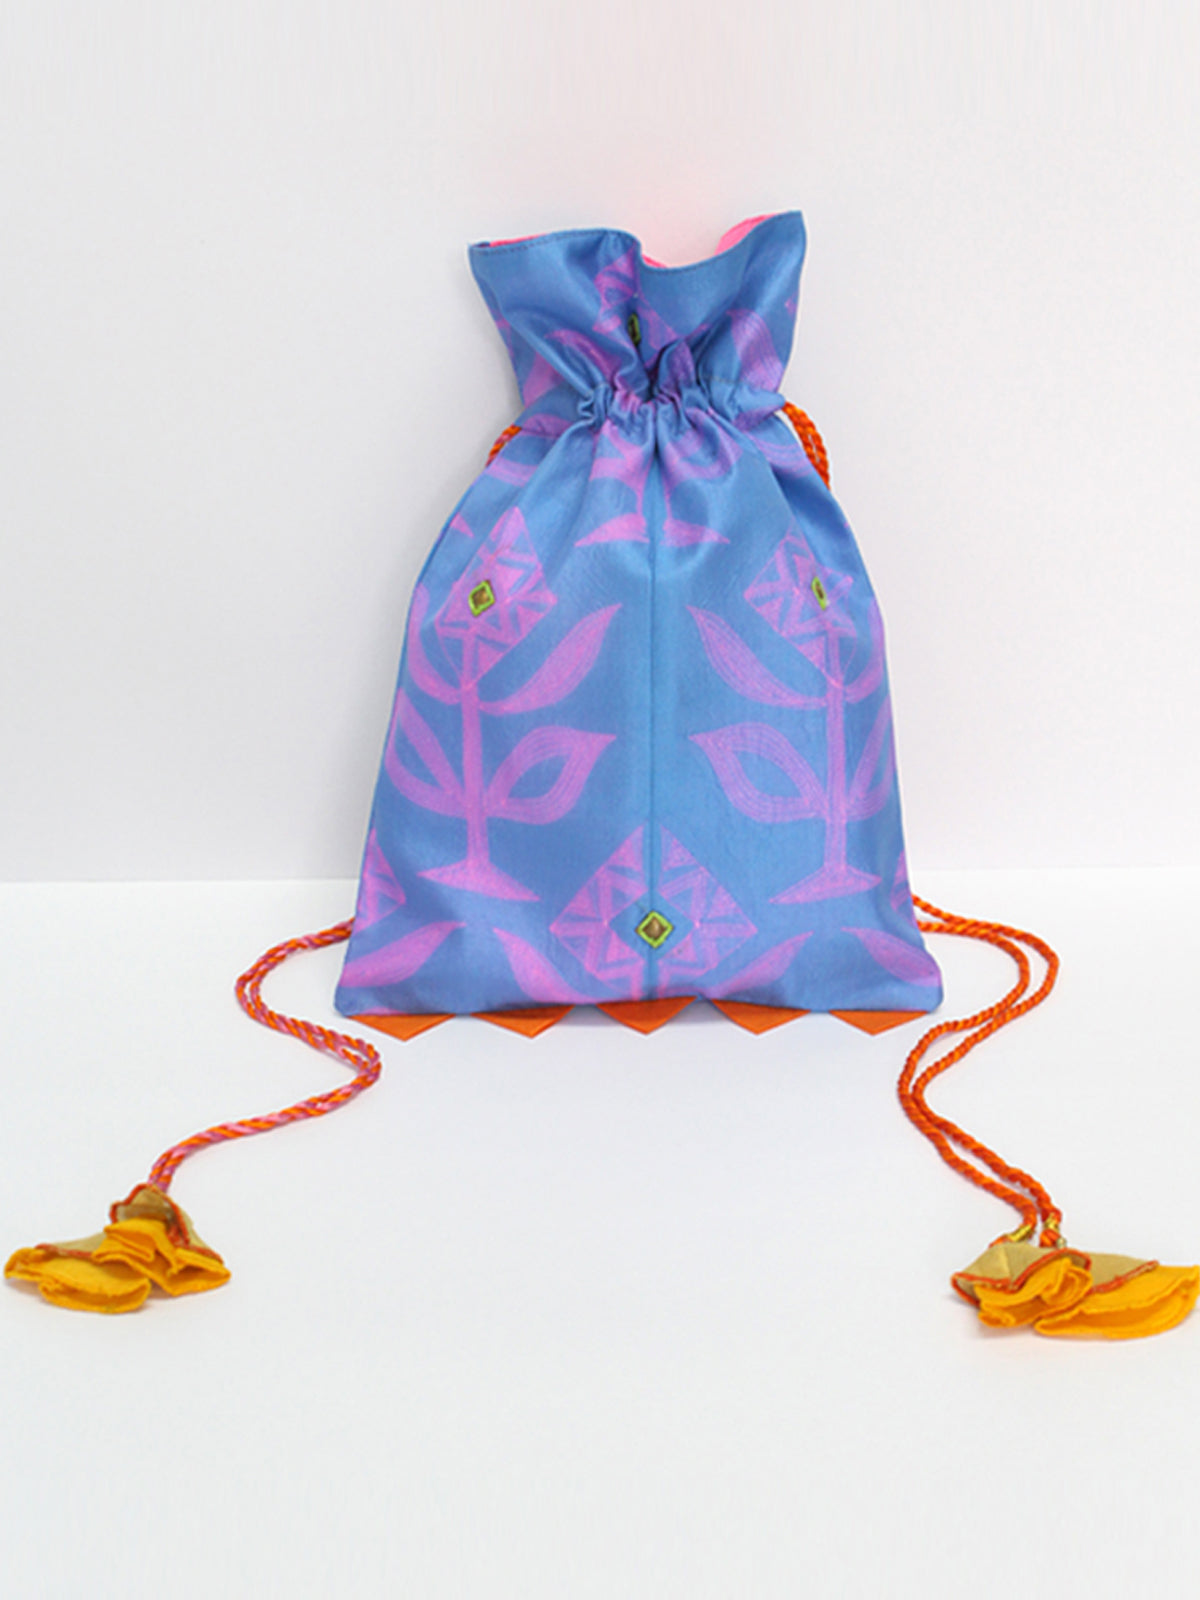 BLUE SHIBORI POTLI BAG